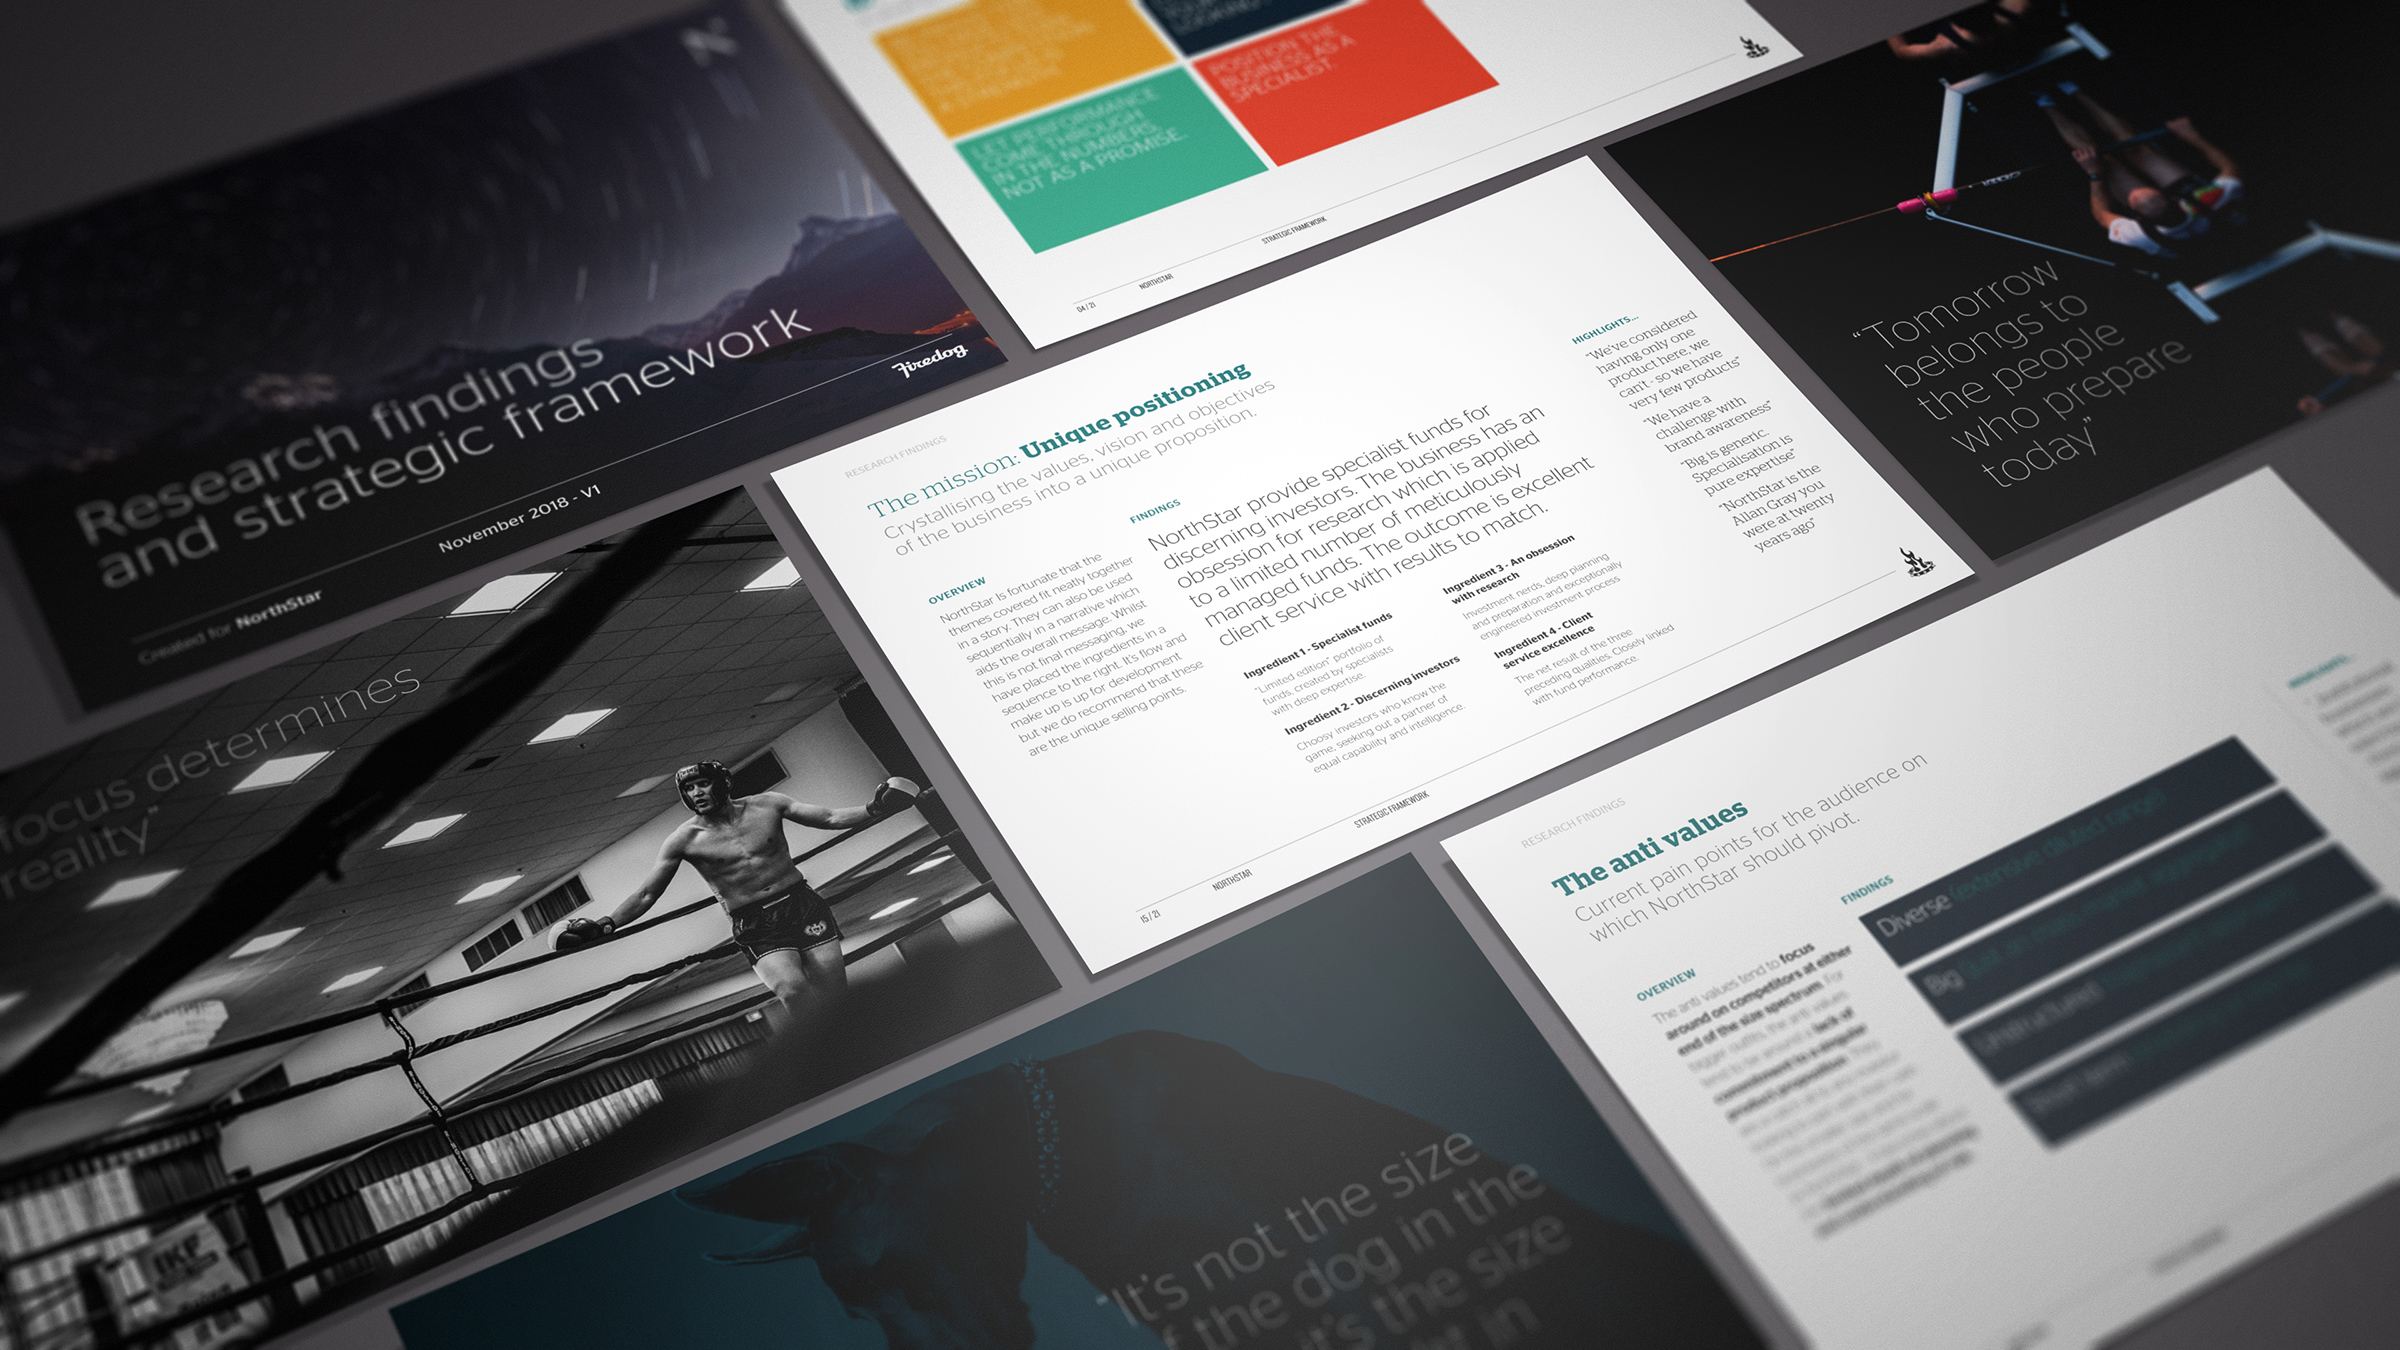 The results of our research efforts were distilled into a thirty page strategic framework that encompassed all the positioning and messaging requirements.